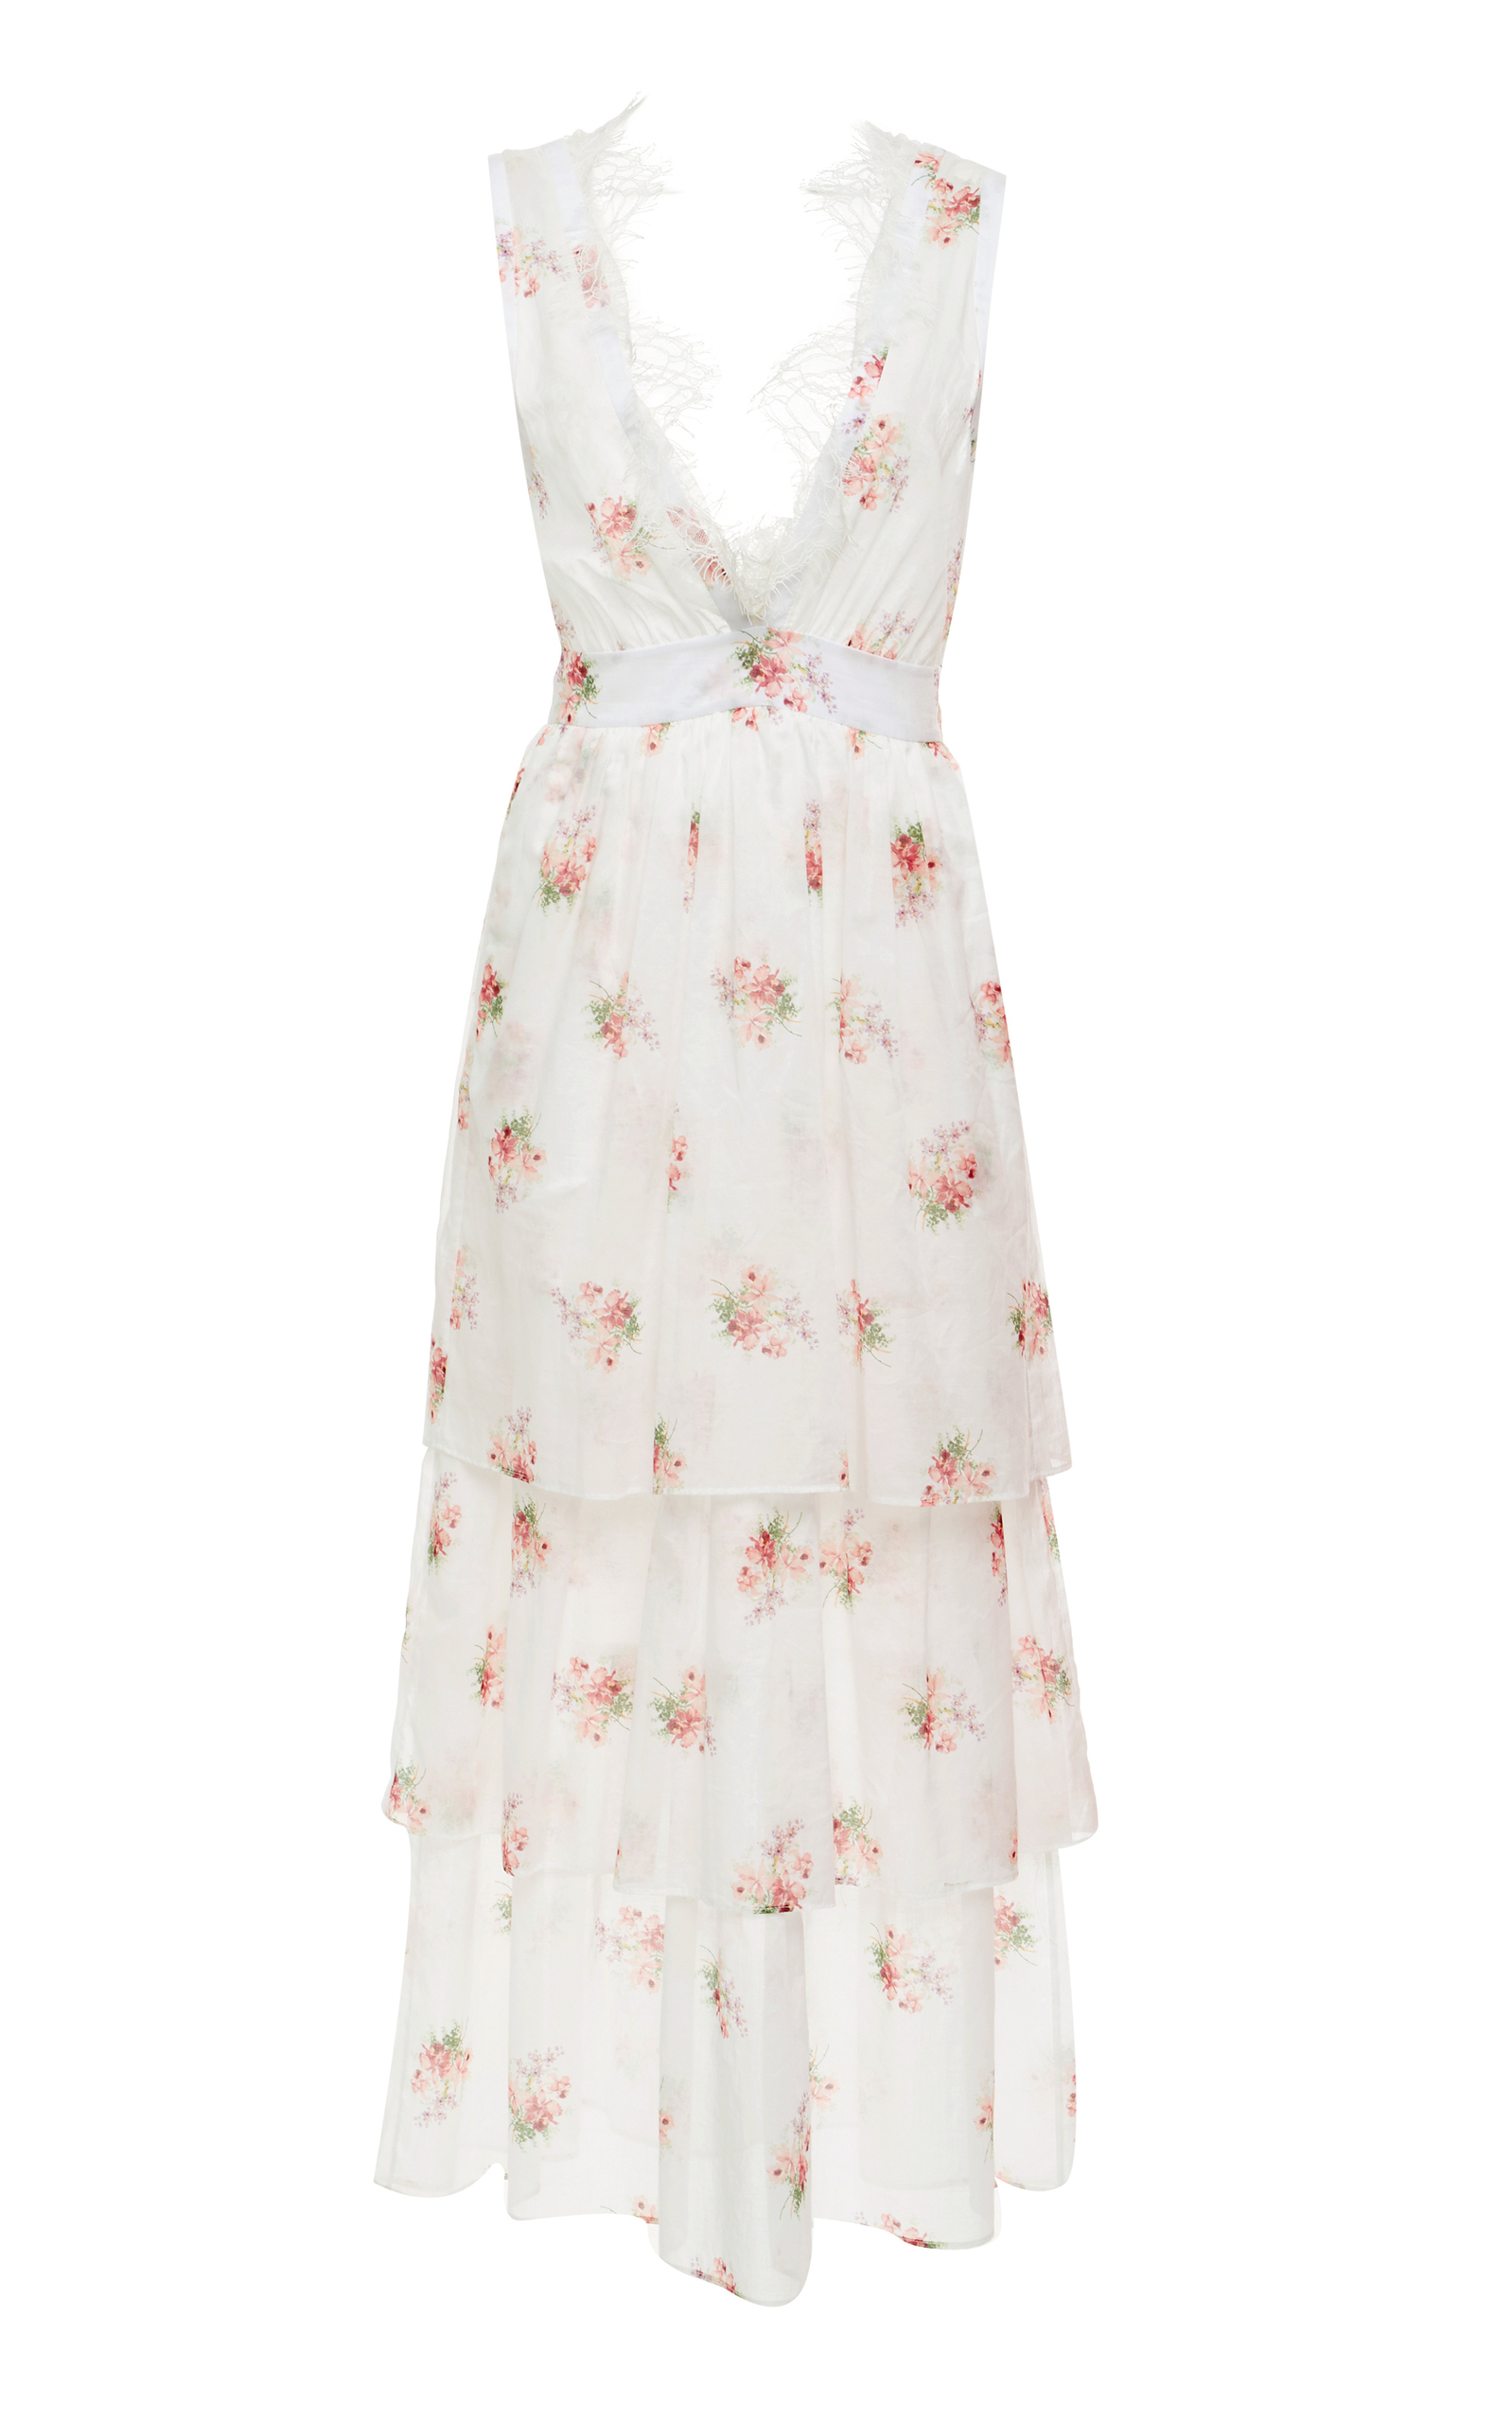 BROCK COLLECTION Sleeveless V-Neck Floral-Print Tiered Dress W/ Lace Trim in White